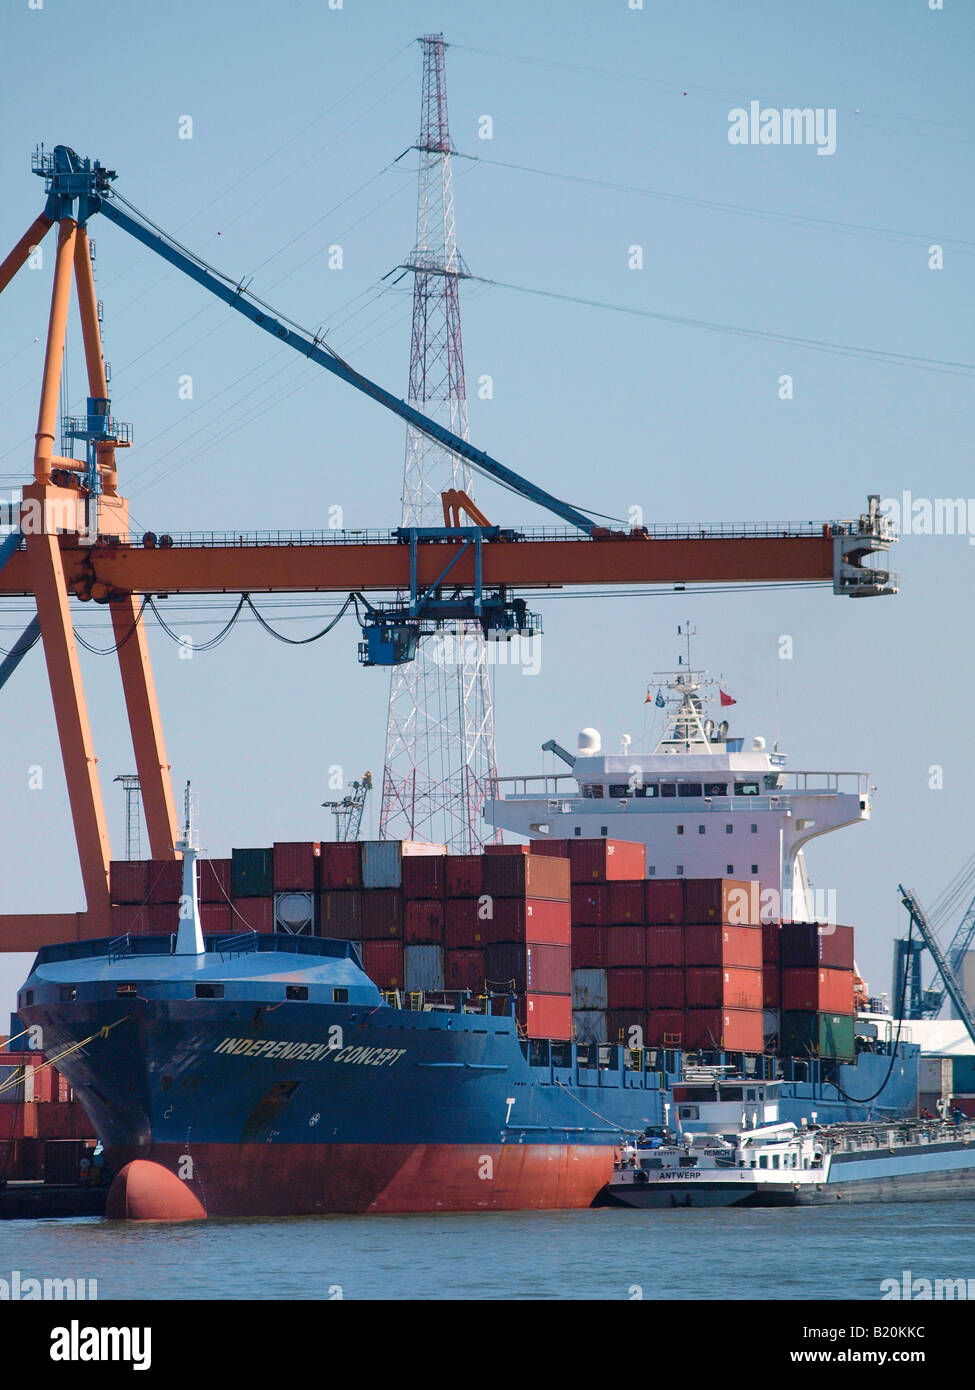 Container ship in the port of Antwerp Belgium - Stock Image